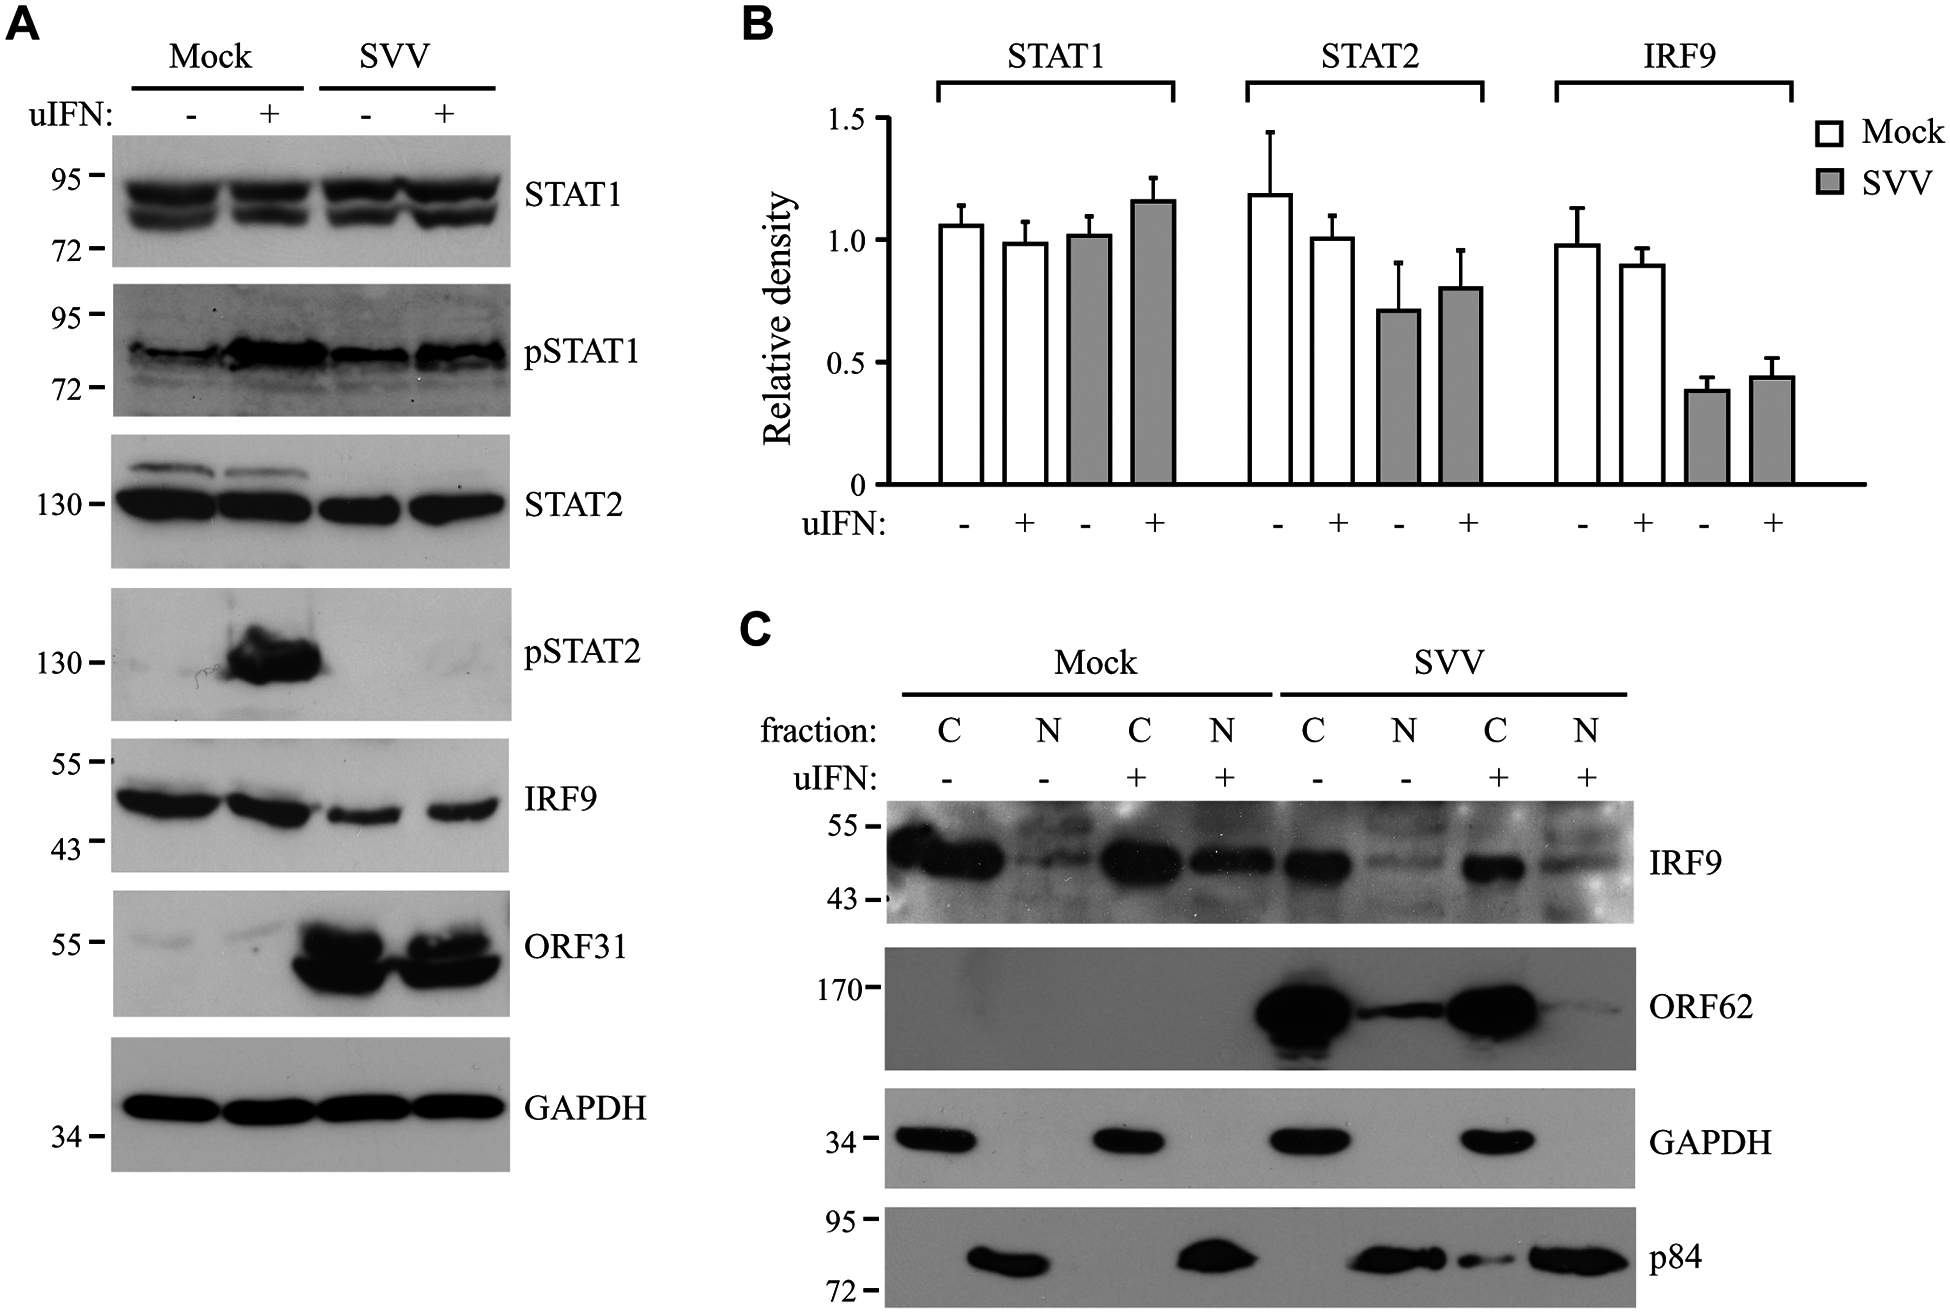 SVV prevents IFN-mediated phosphorylation of STAT2 and reduces expression levels of STAT2 and IRF9.